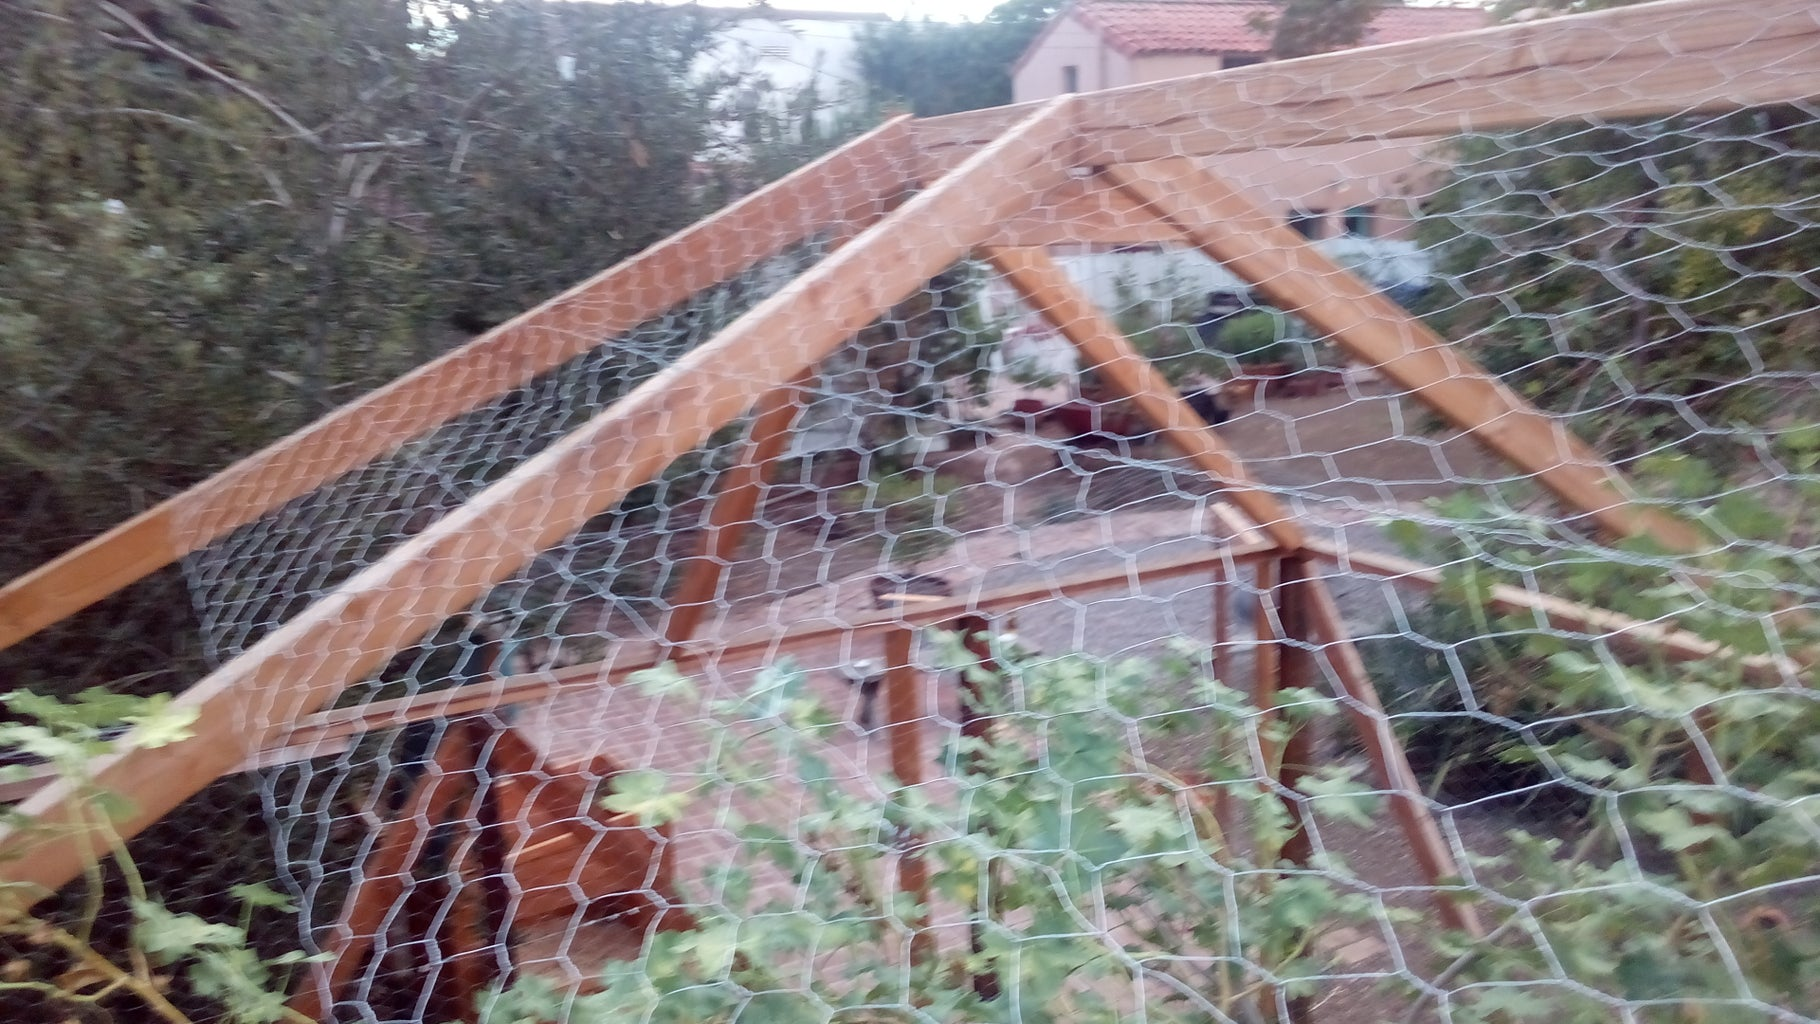 Continue Adding Chicken Wire to the Roof